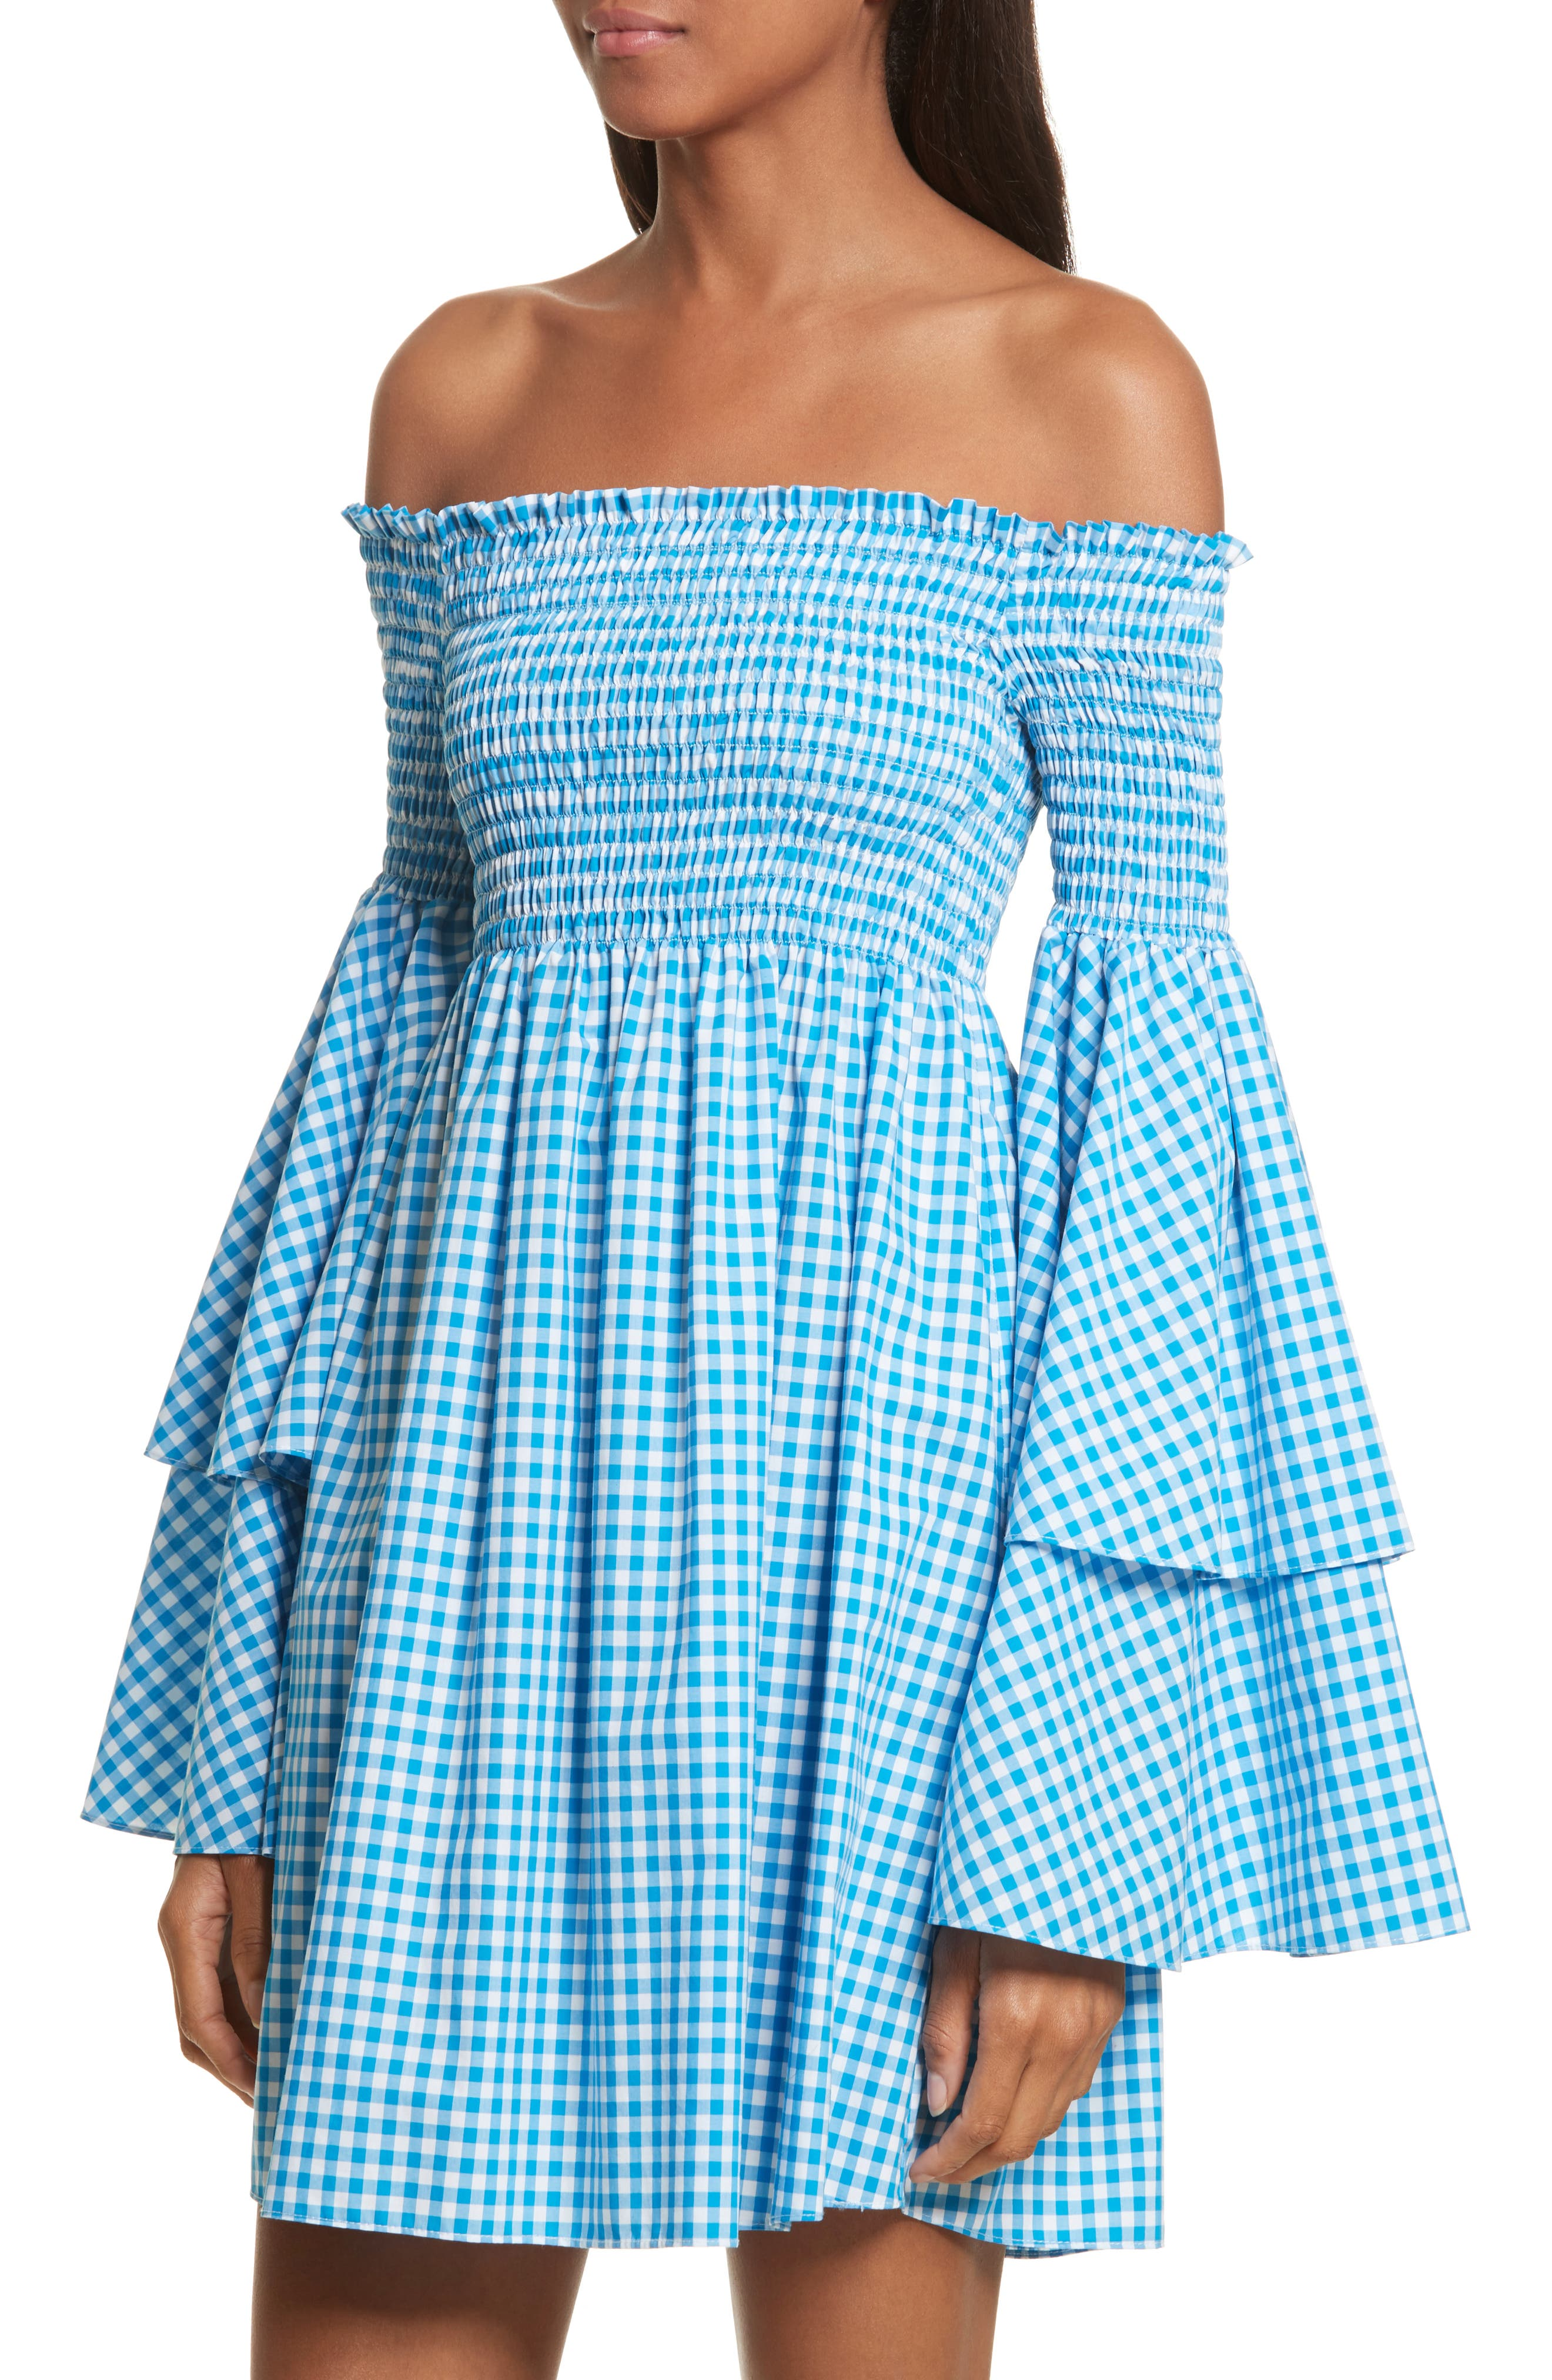 Appolonia Gingham Off the Shoulder Dress,                             Alternate thumbnail 4, color,                             Turquoise